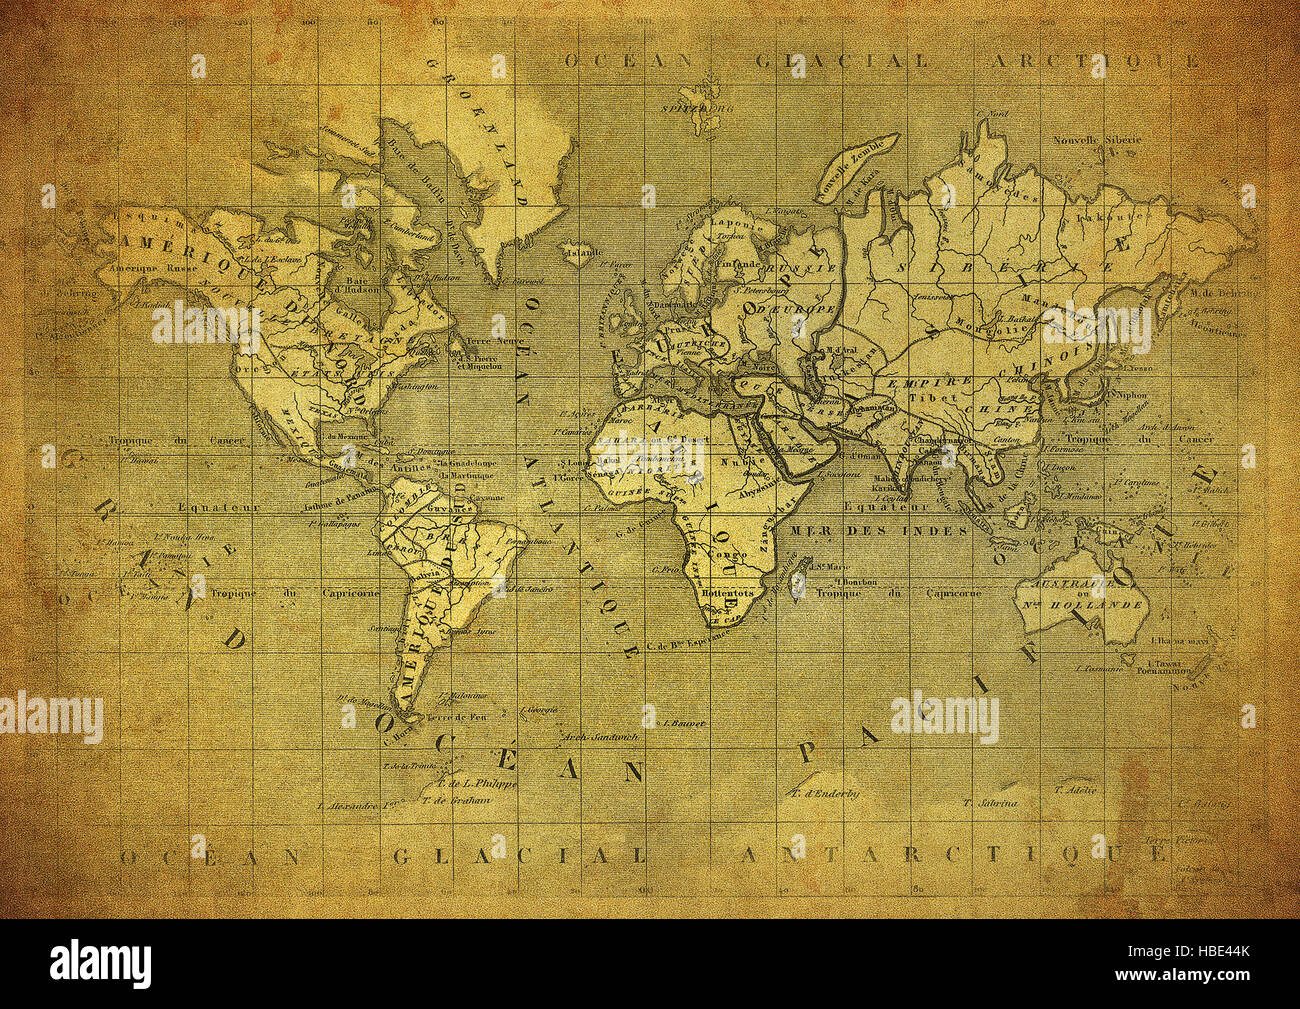 vintage map of the world published in 1847 - Stock Image